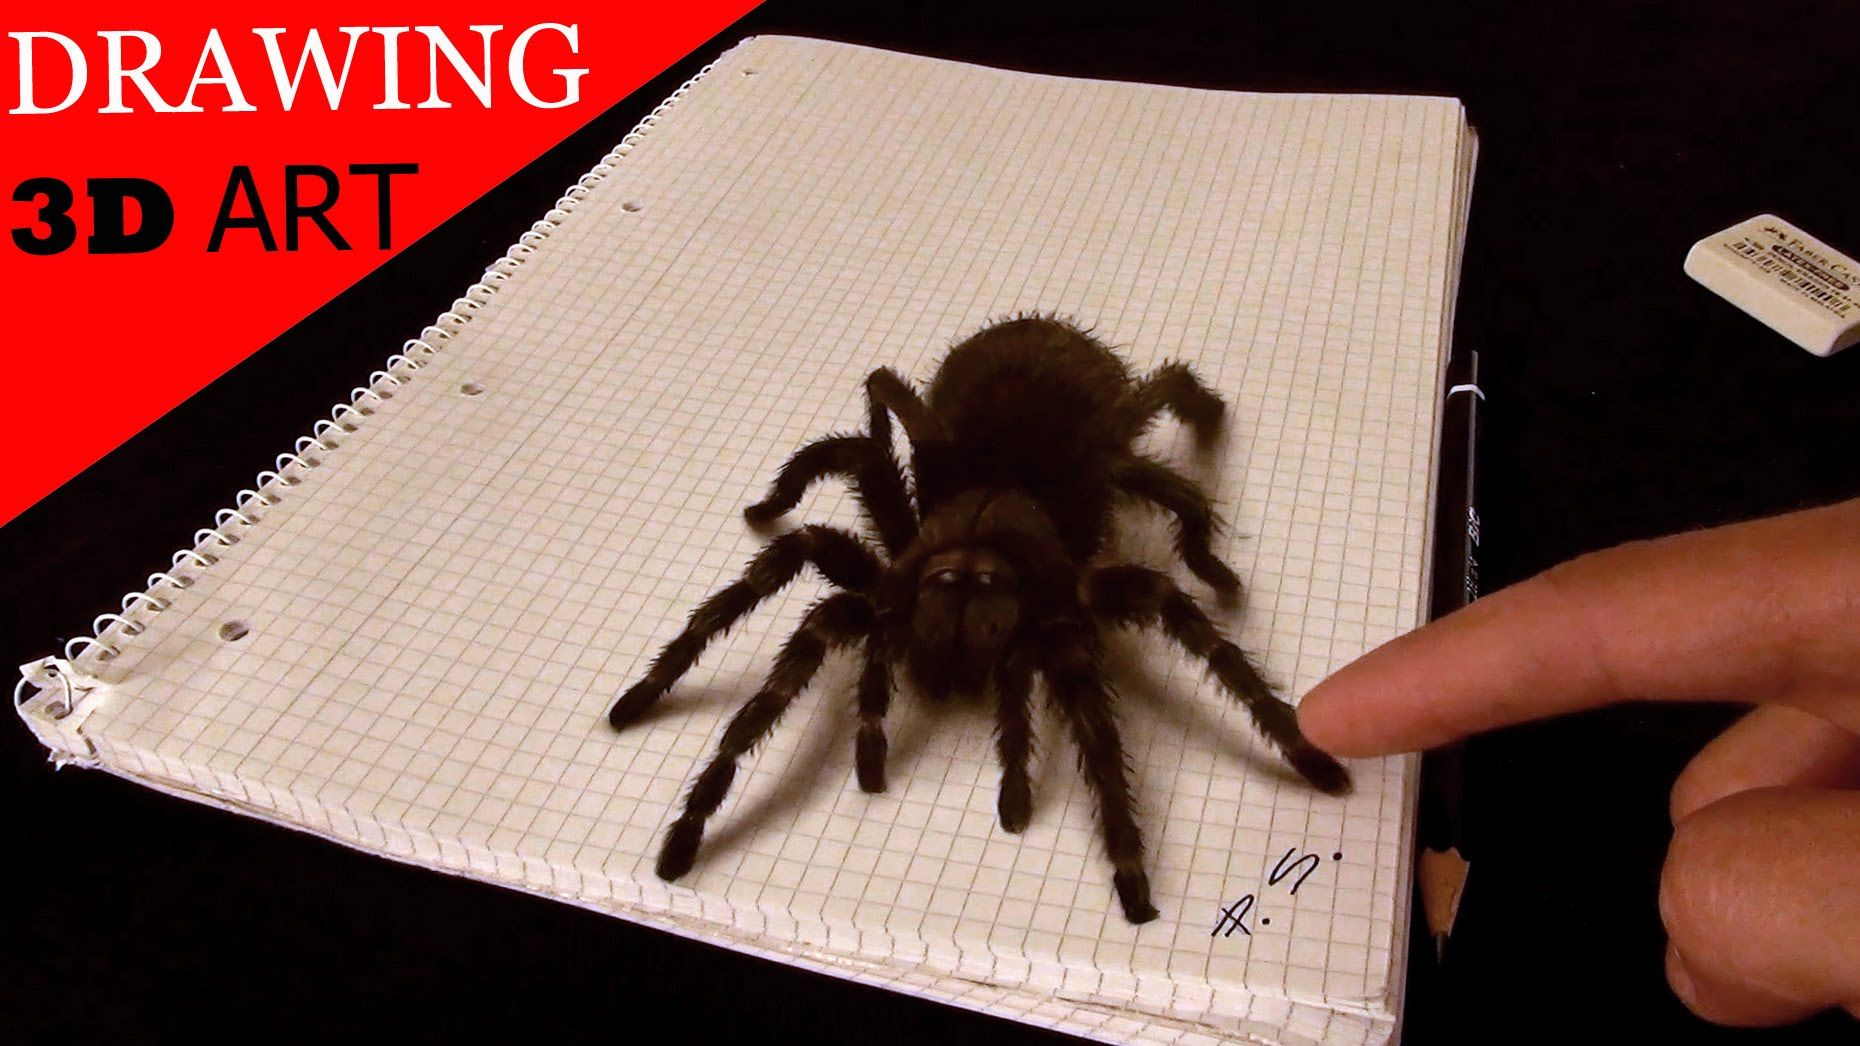 3D Spider Drawing/AMAZING realistic illusion! | 3D DRAWINGS ...